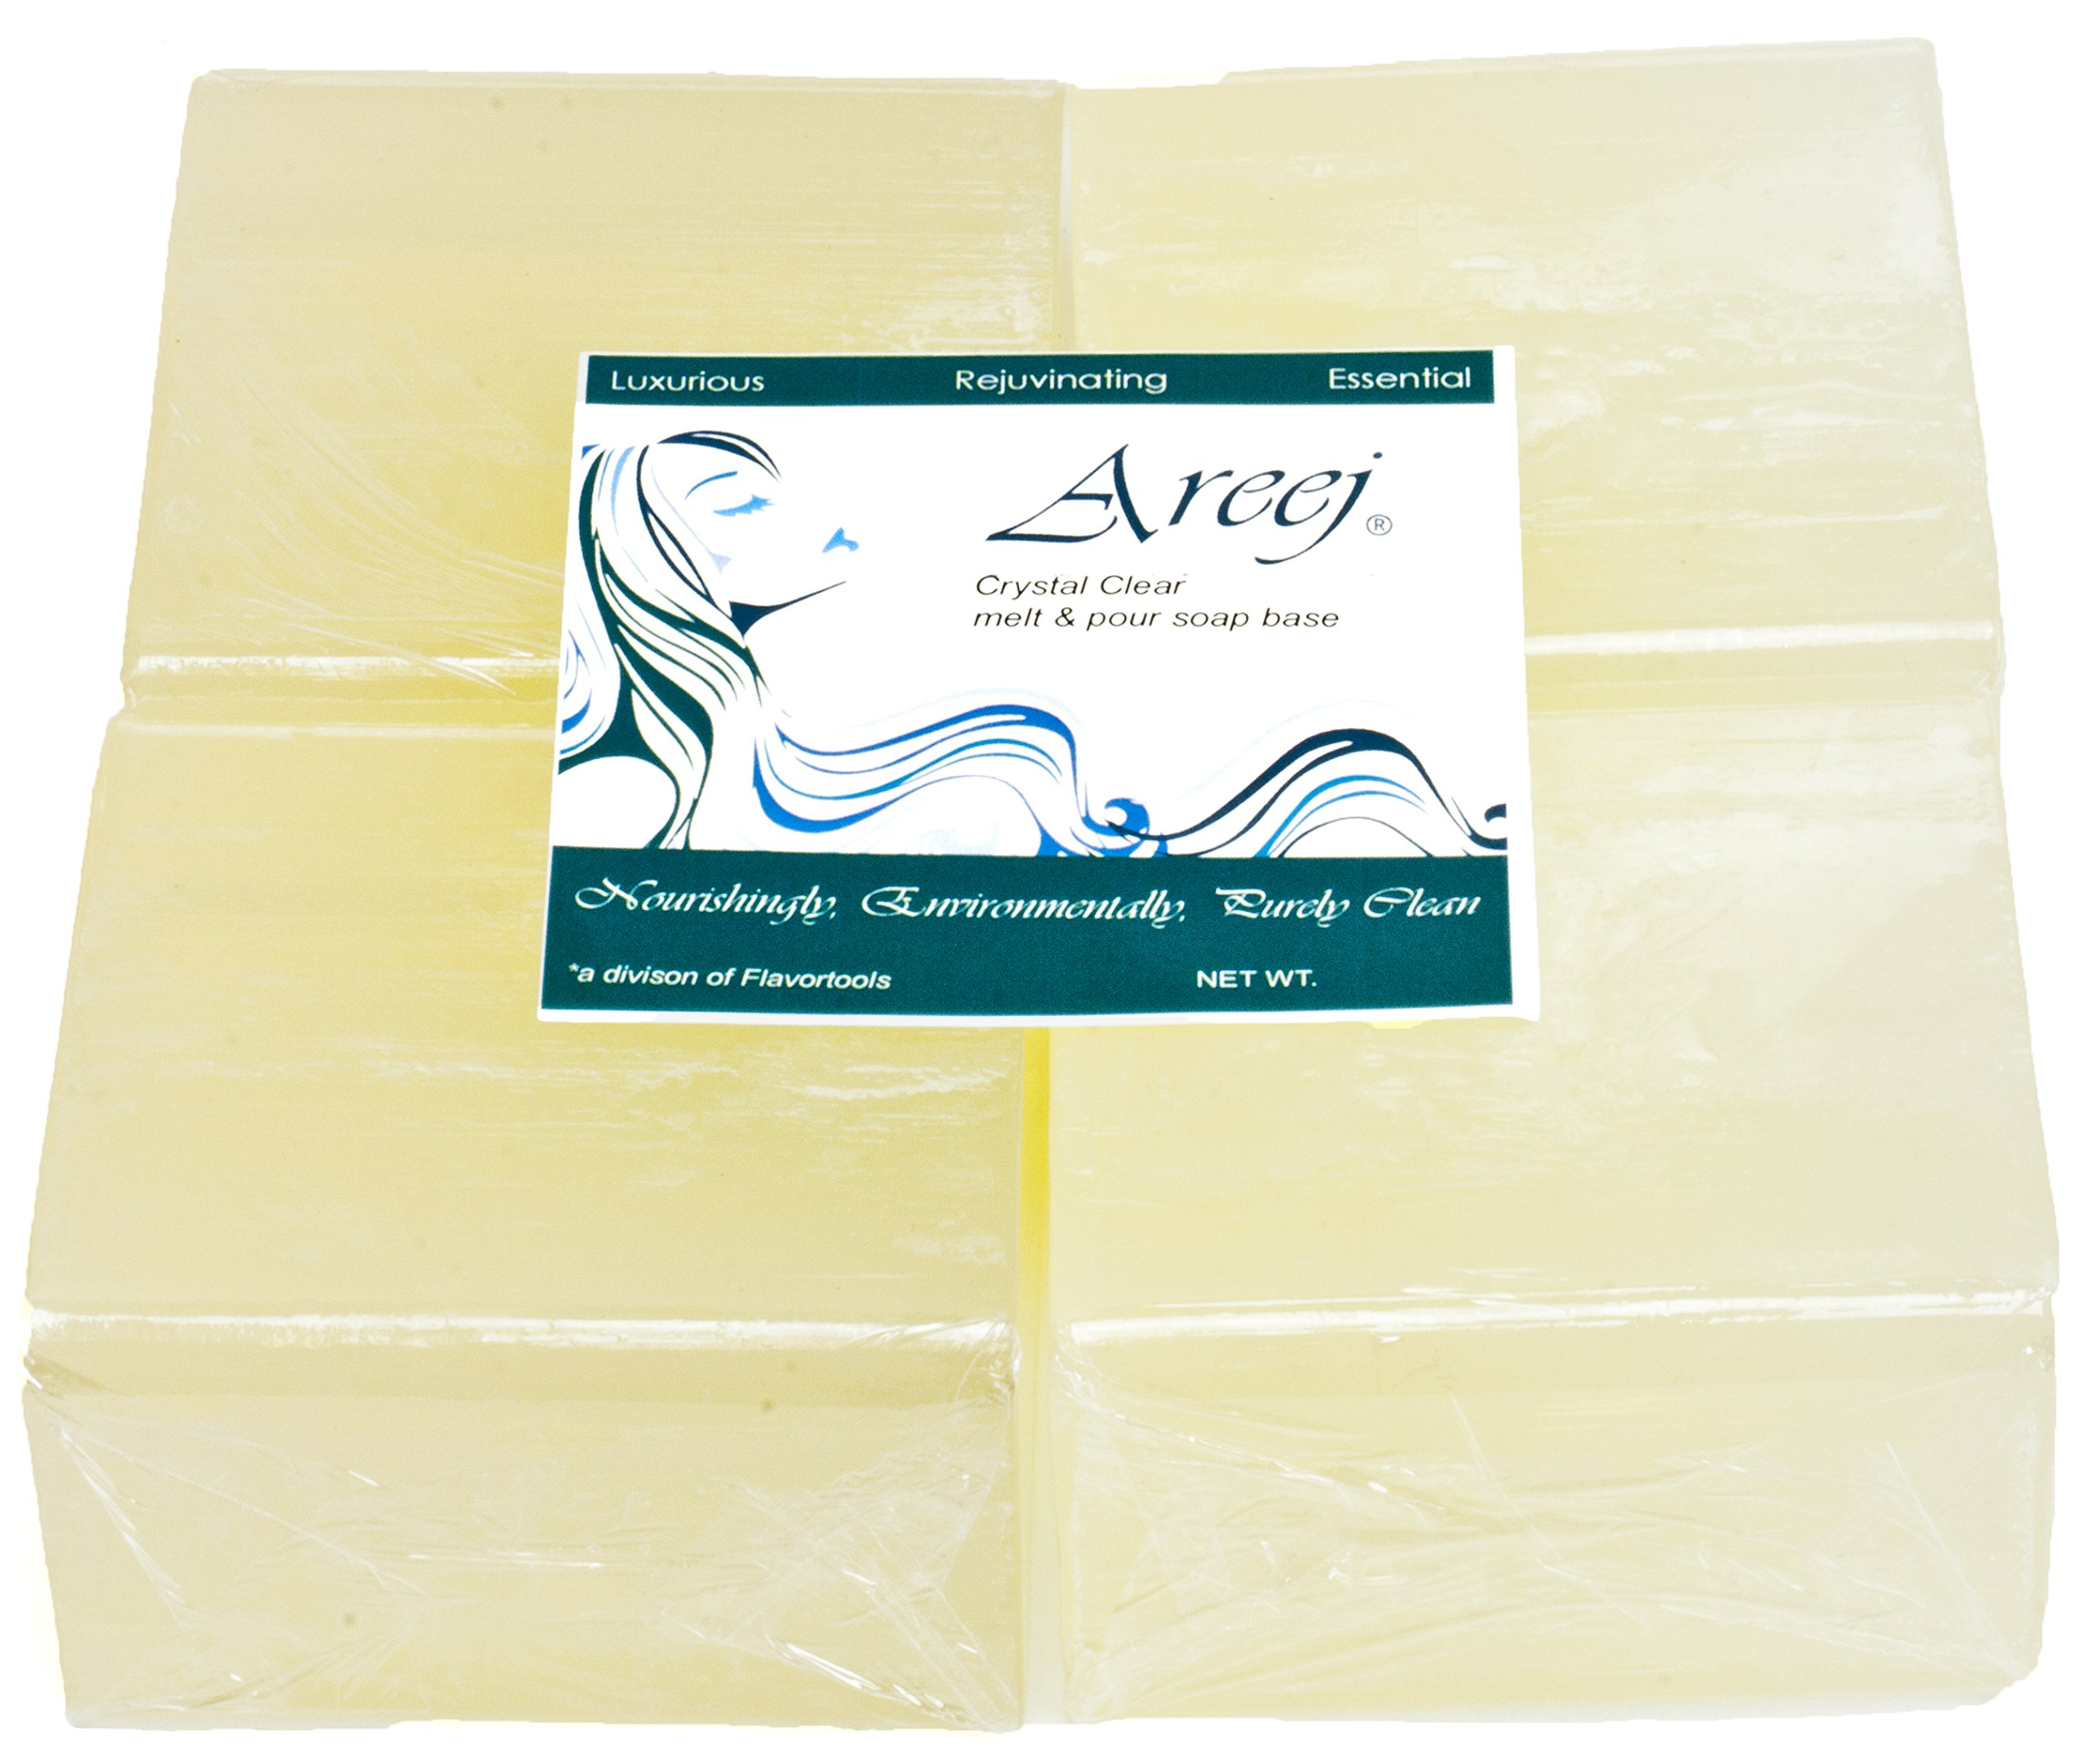 Areej Hypo-Allergenic Biodegradable Crystal Clear Soap Base made with 100% Pure Natural Glycerin - 10 Pounds